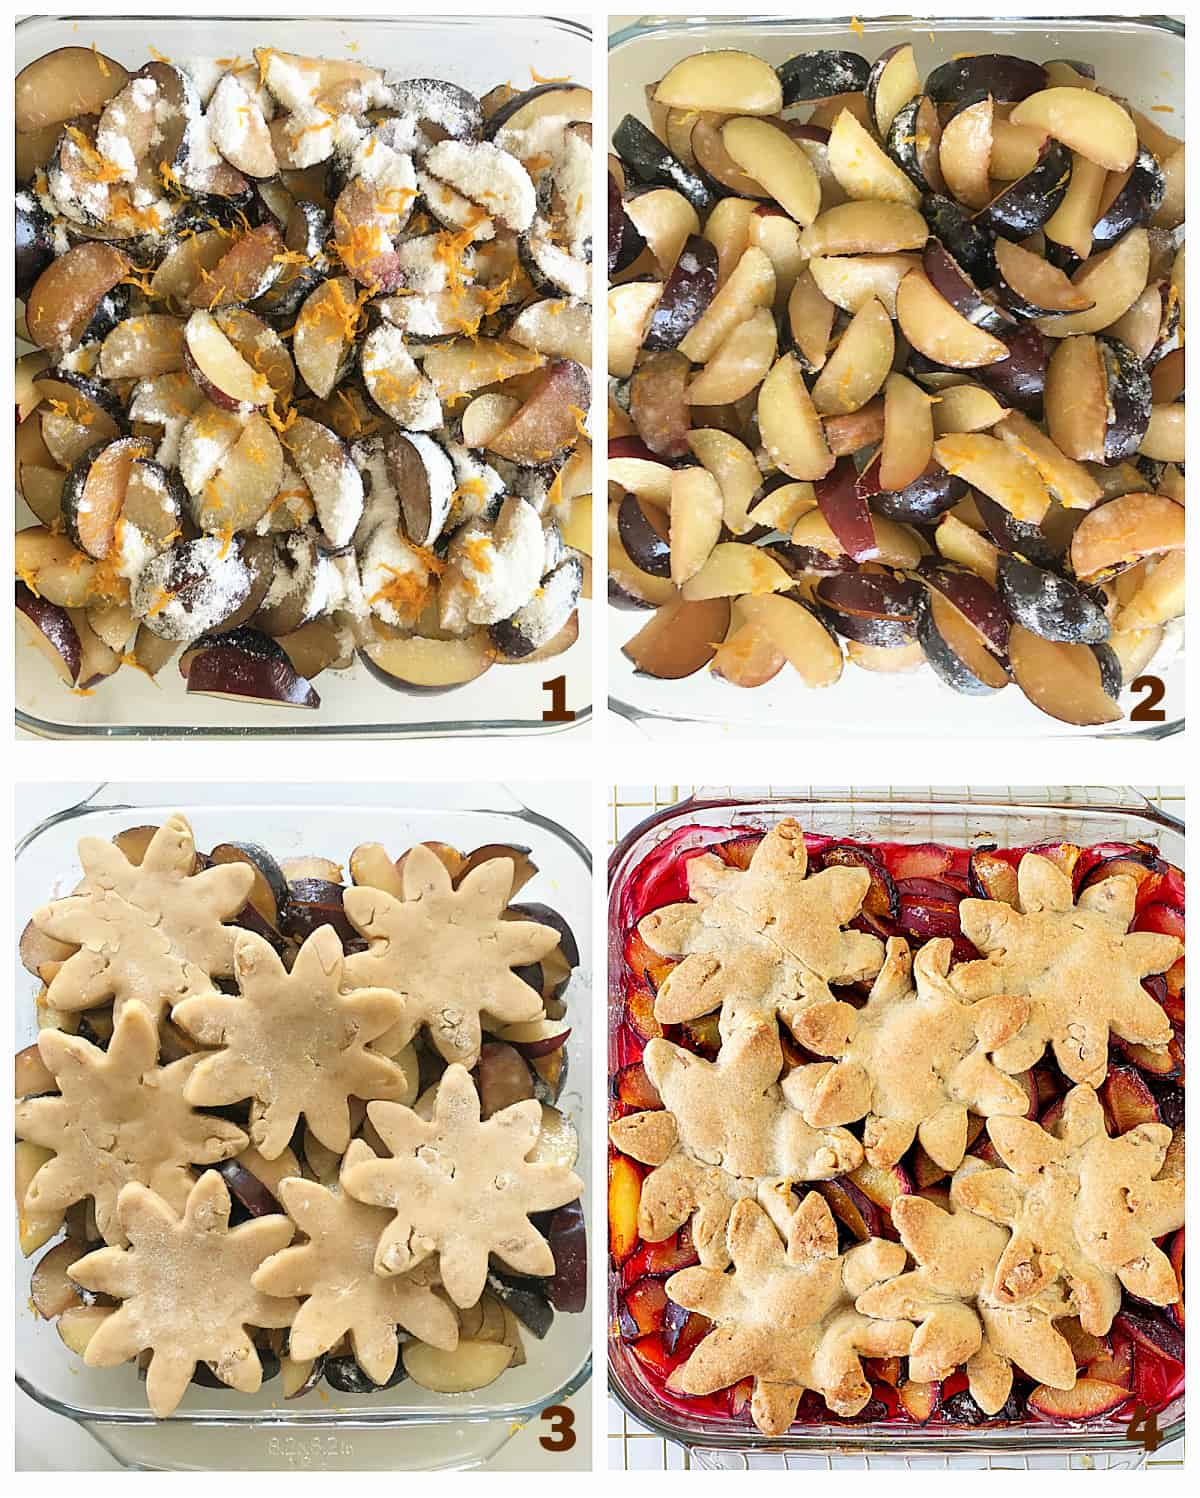 Image collage of 4 photos with sliced plums in glass dish, topped with dough flowers and already baked dessert